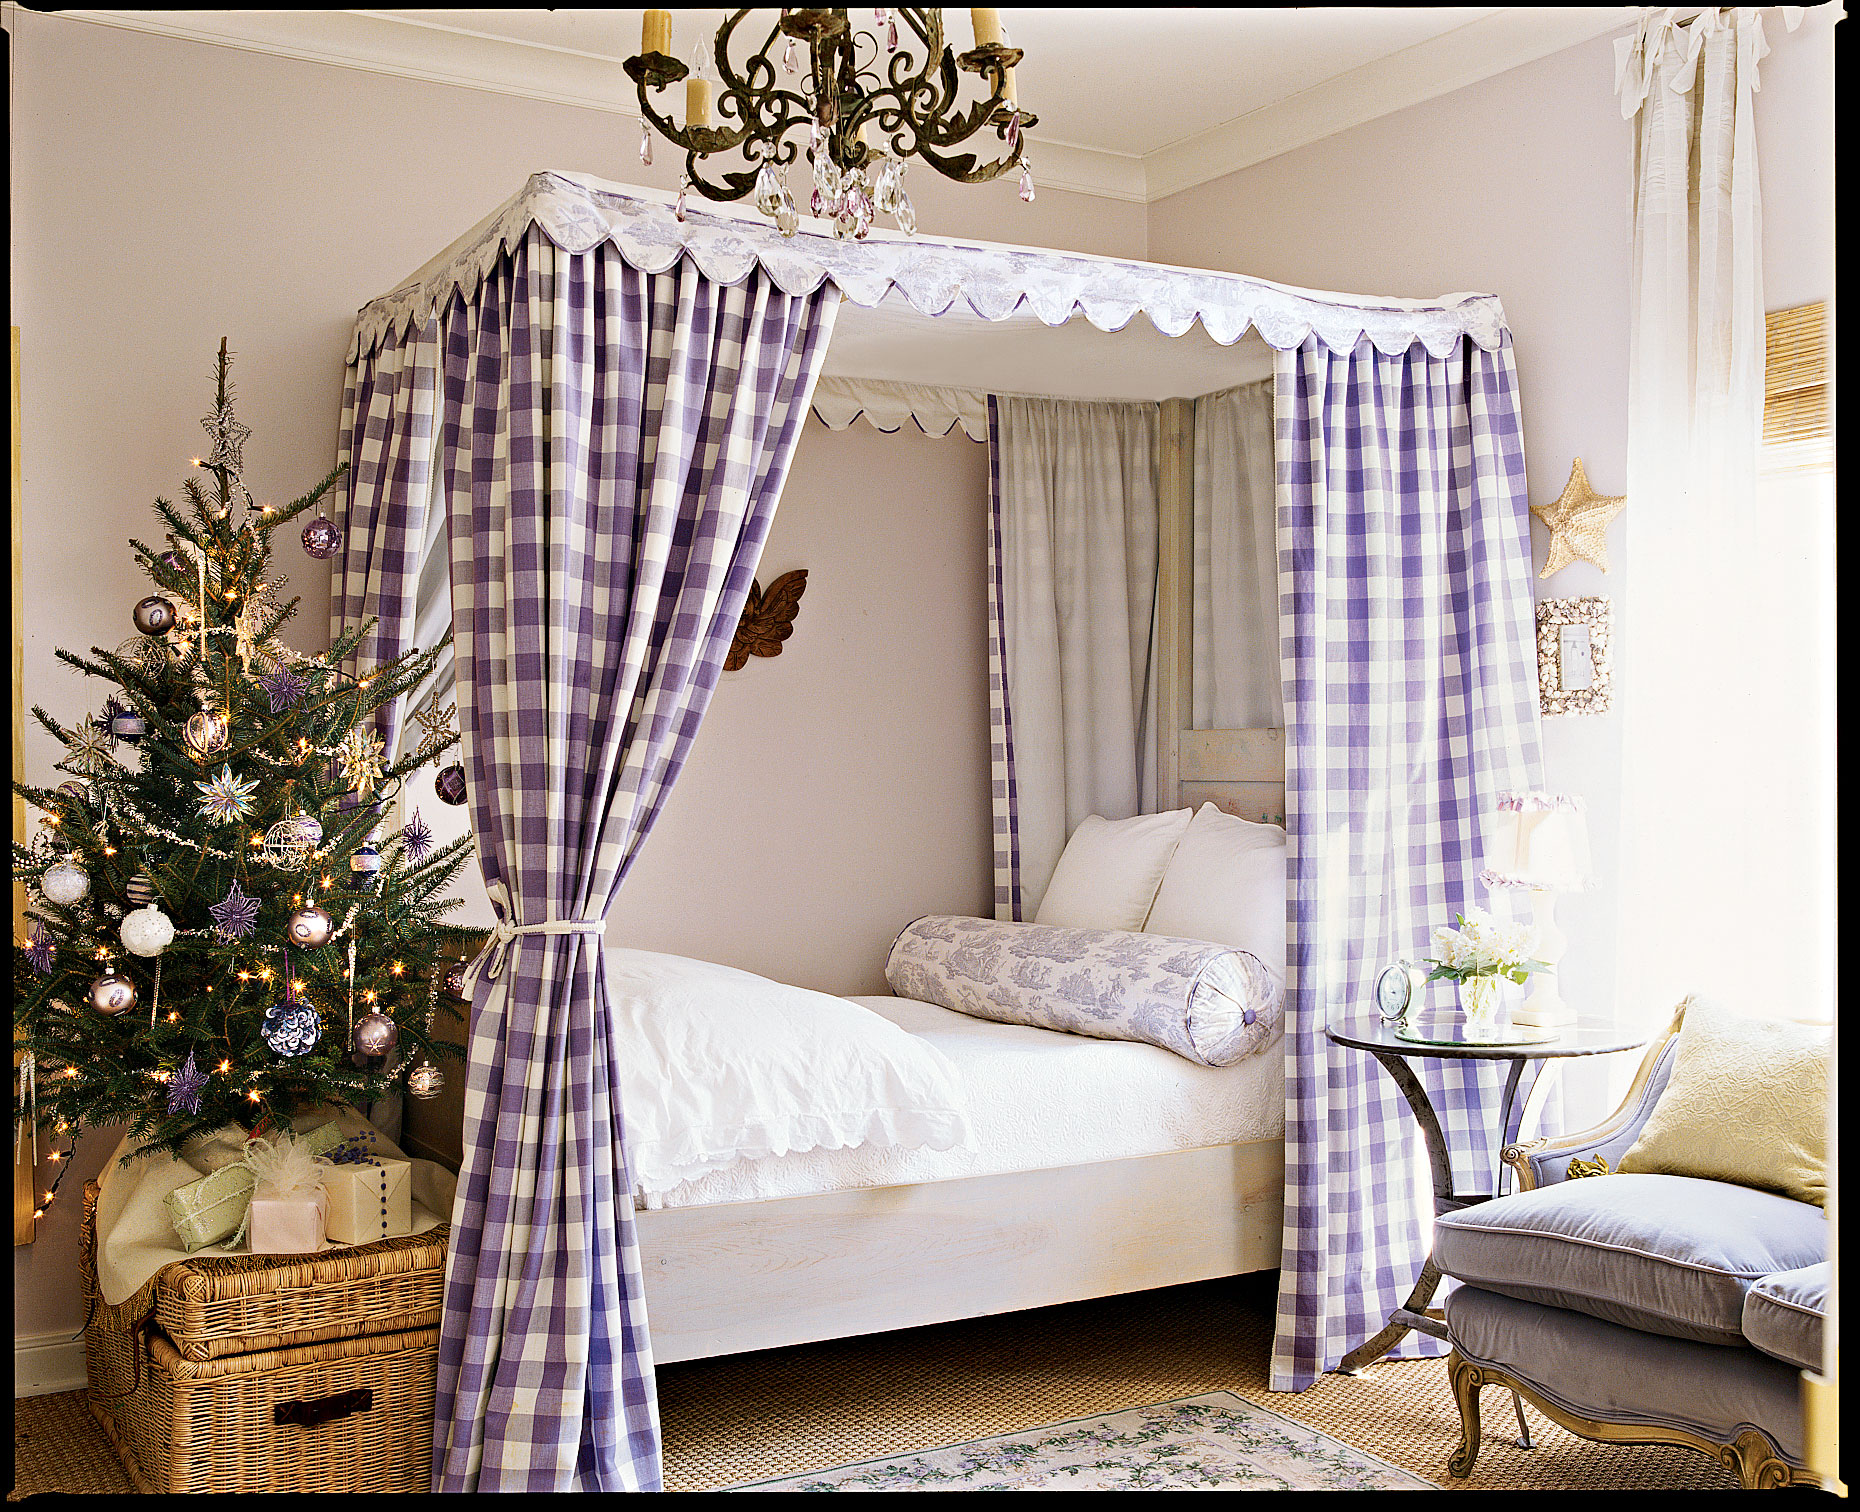 Playful Holiday Kid's Room